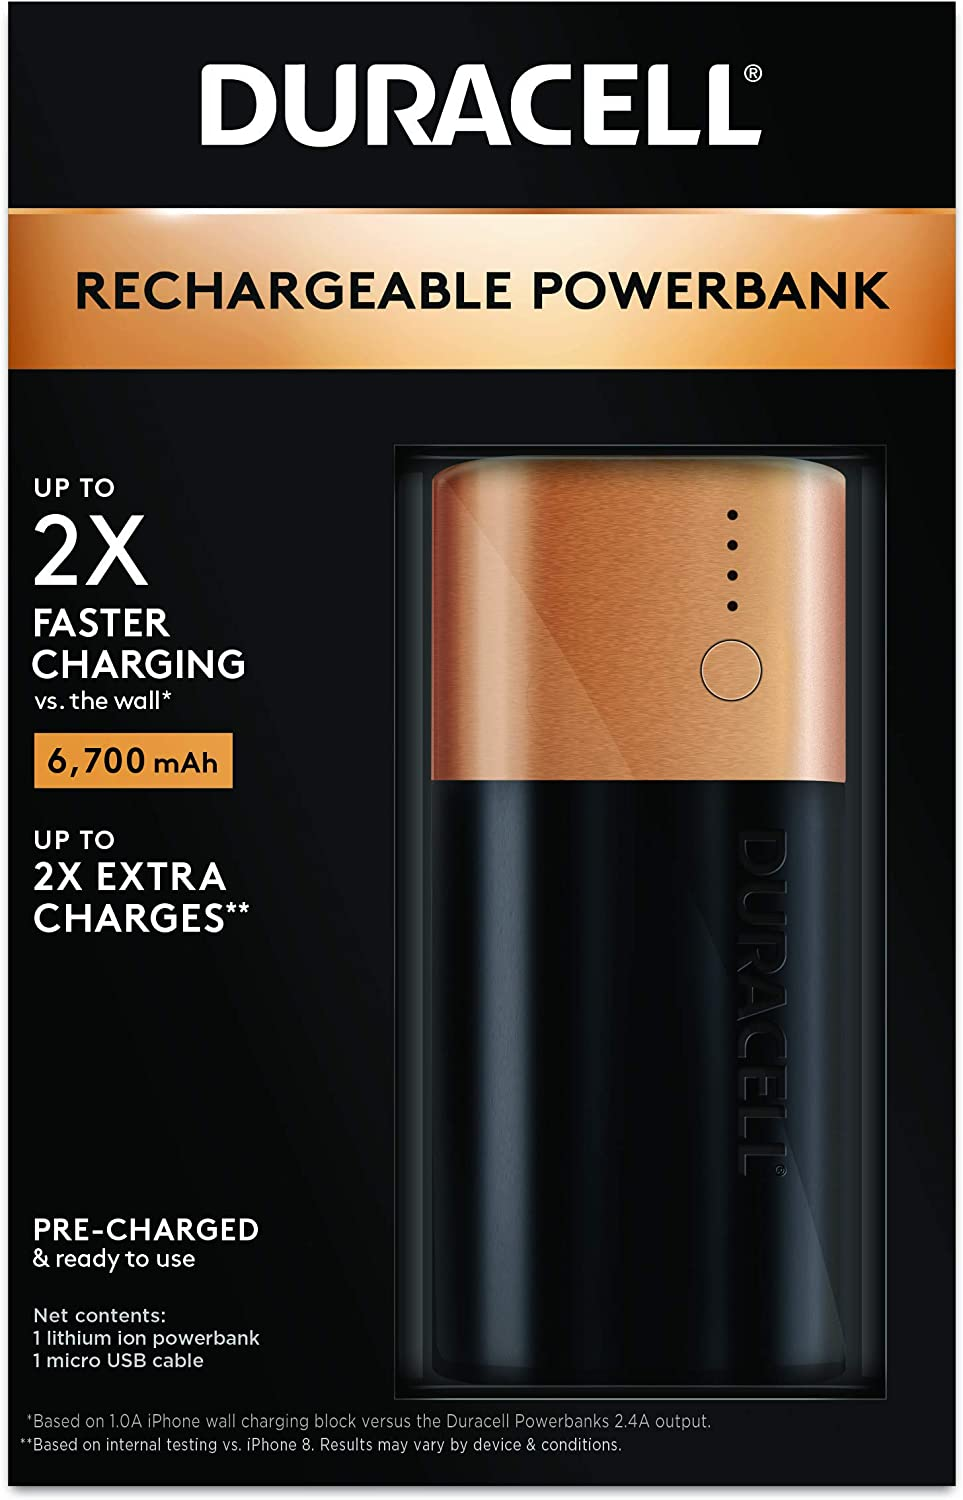 Duracell Rechargeable Powerbank 6700 mAh | 2 Day Portable Charger | Compatible With iPhone, iPad, Samsung, Android, Nintendo Switch & more | TSA Carry-On Compliant